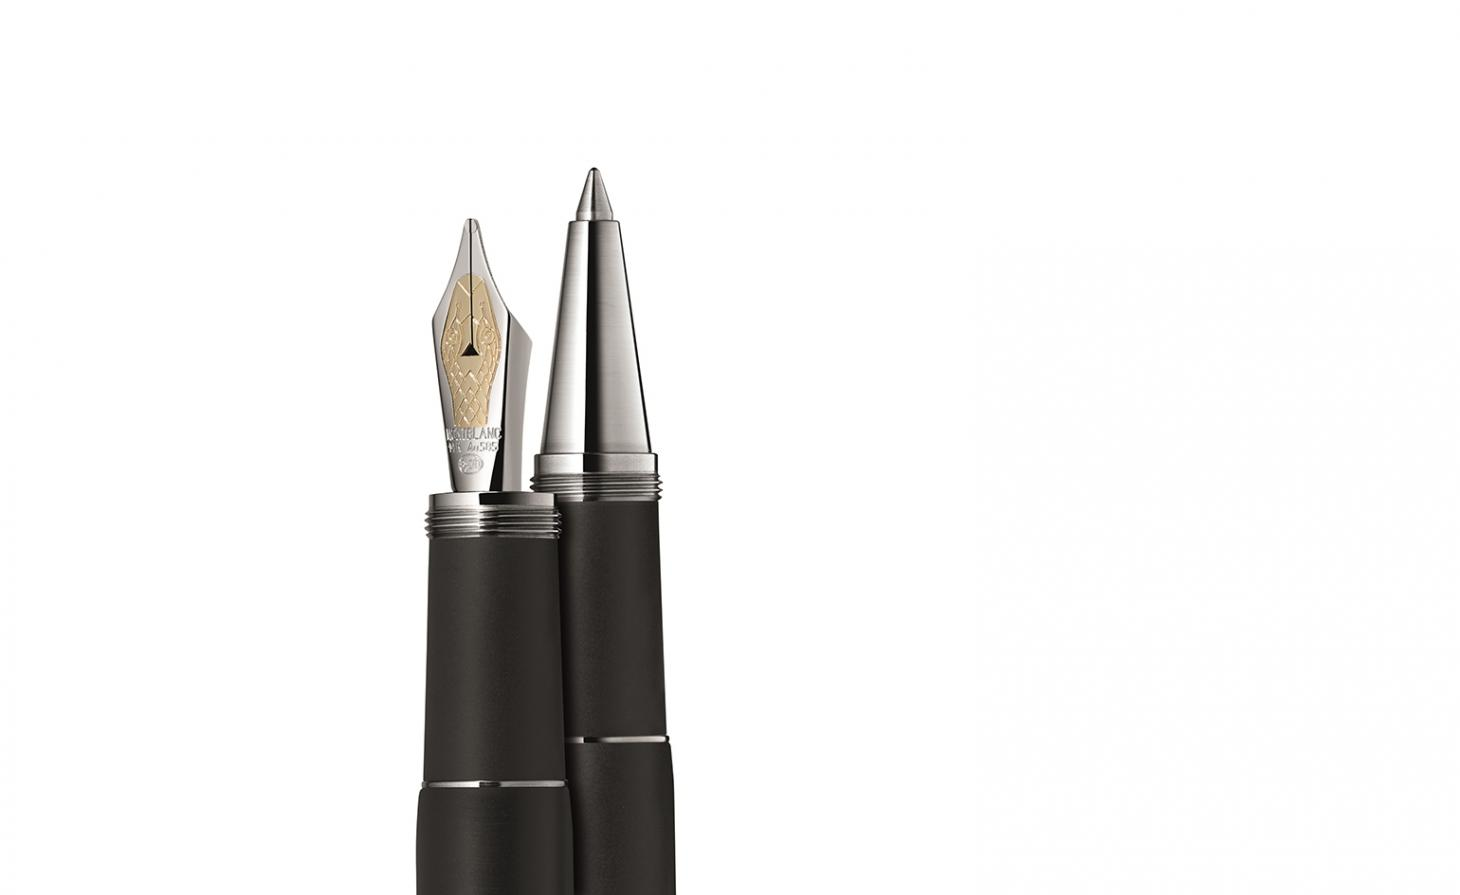 Montblanc Celebrates 110th Anniversary With Heritage Writing Montblanc Celebrates 110th Anniversary With Heritage Writing new pictures